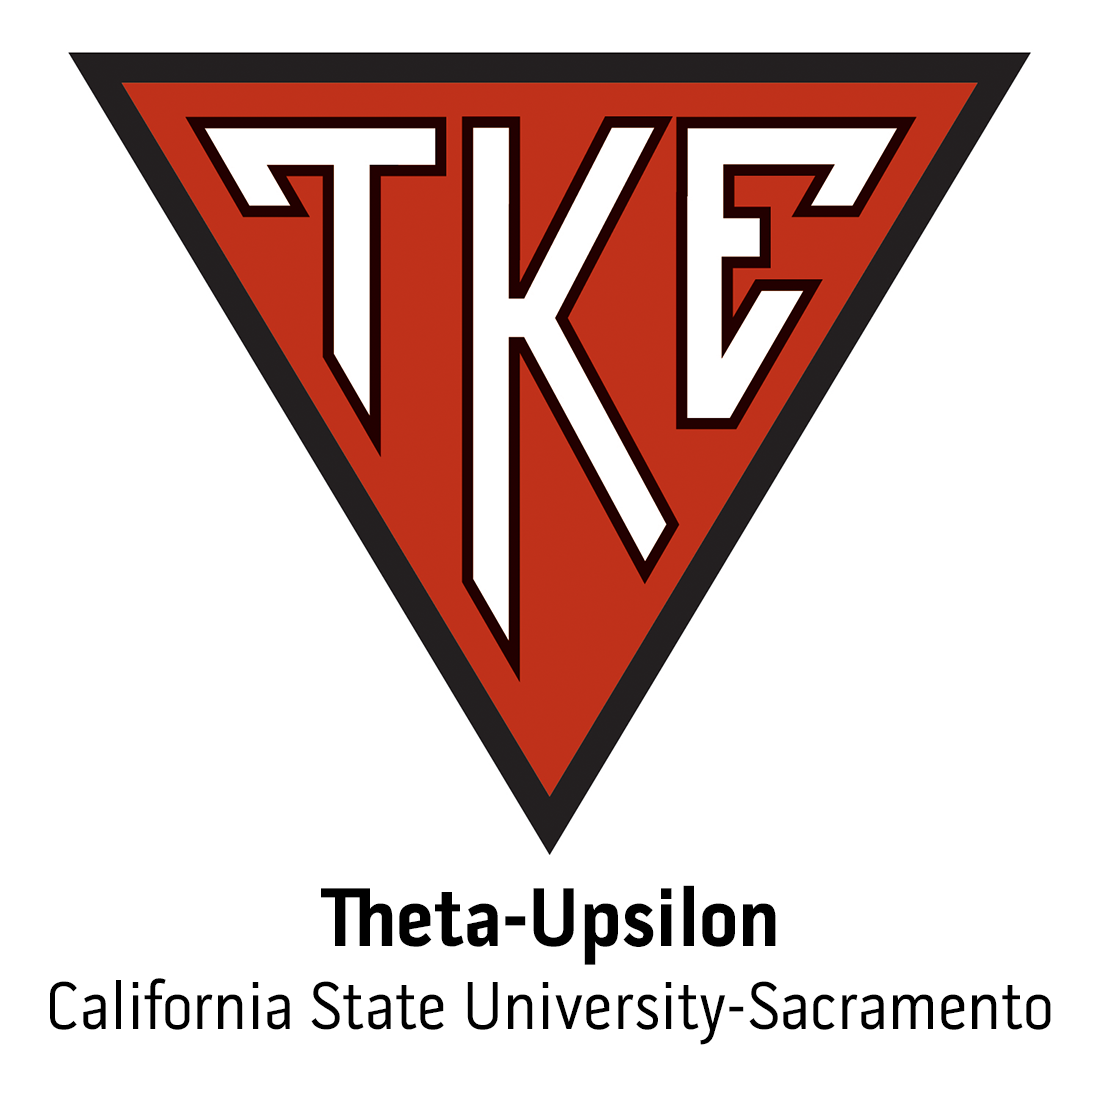 Theta-Upsilon Colony at California State University, Sacramento